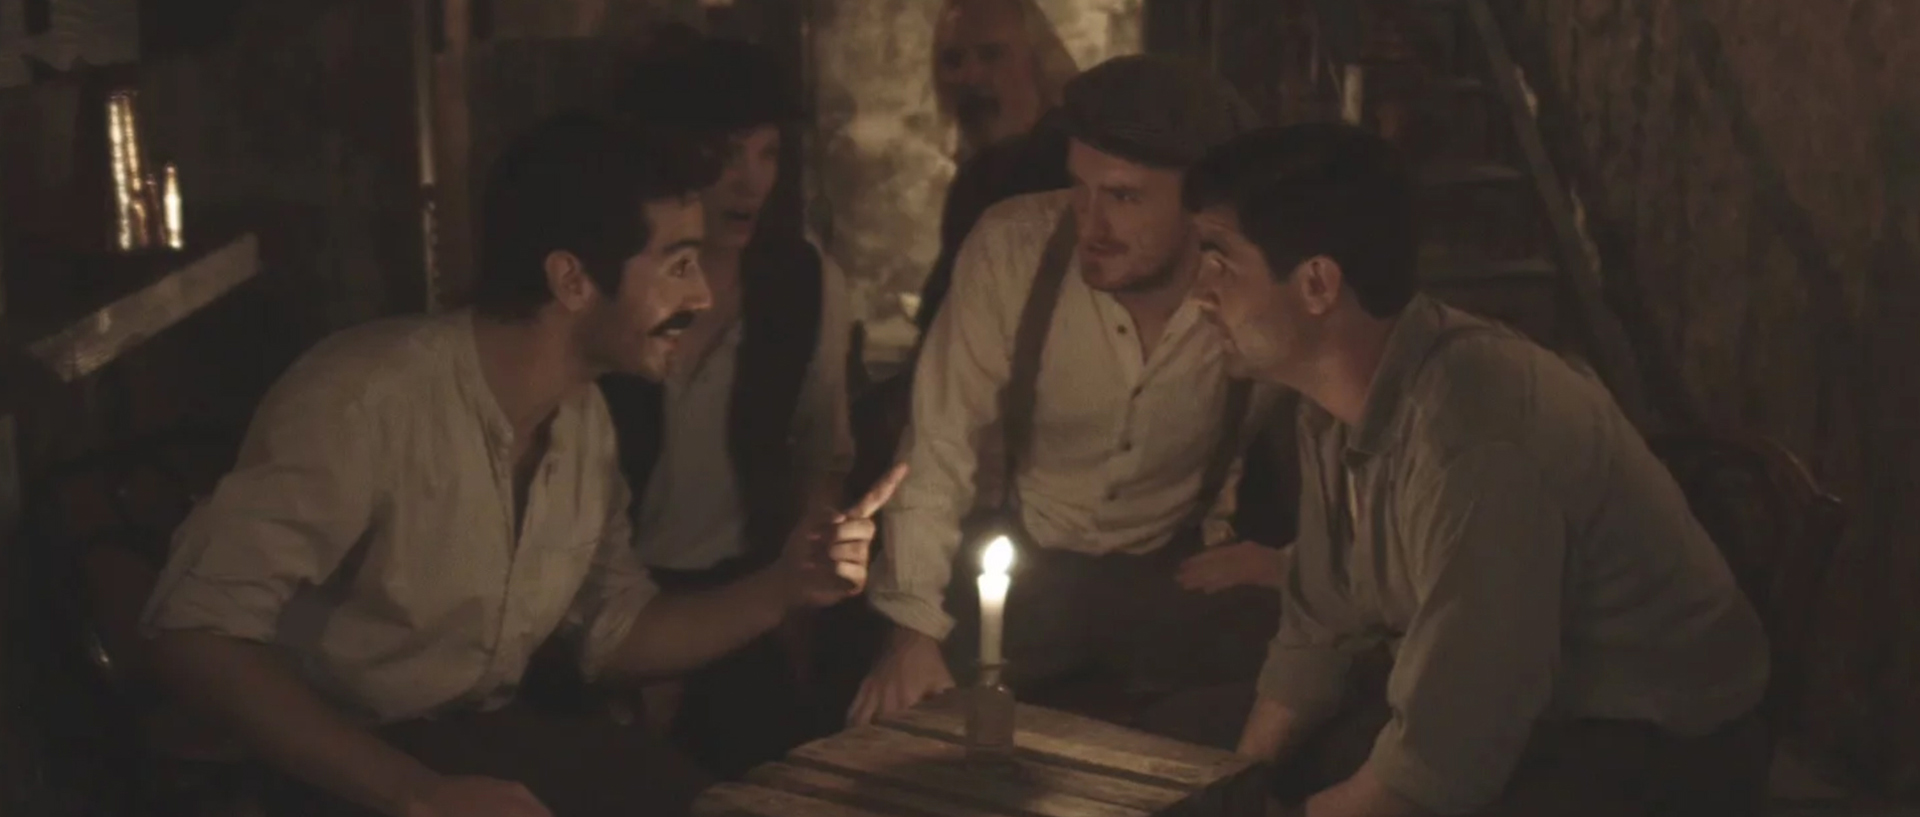 Jameson - The story of st. patrick's day / Commercial